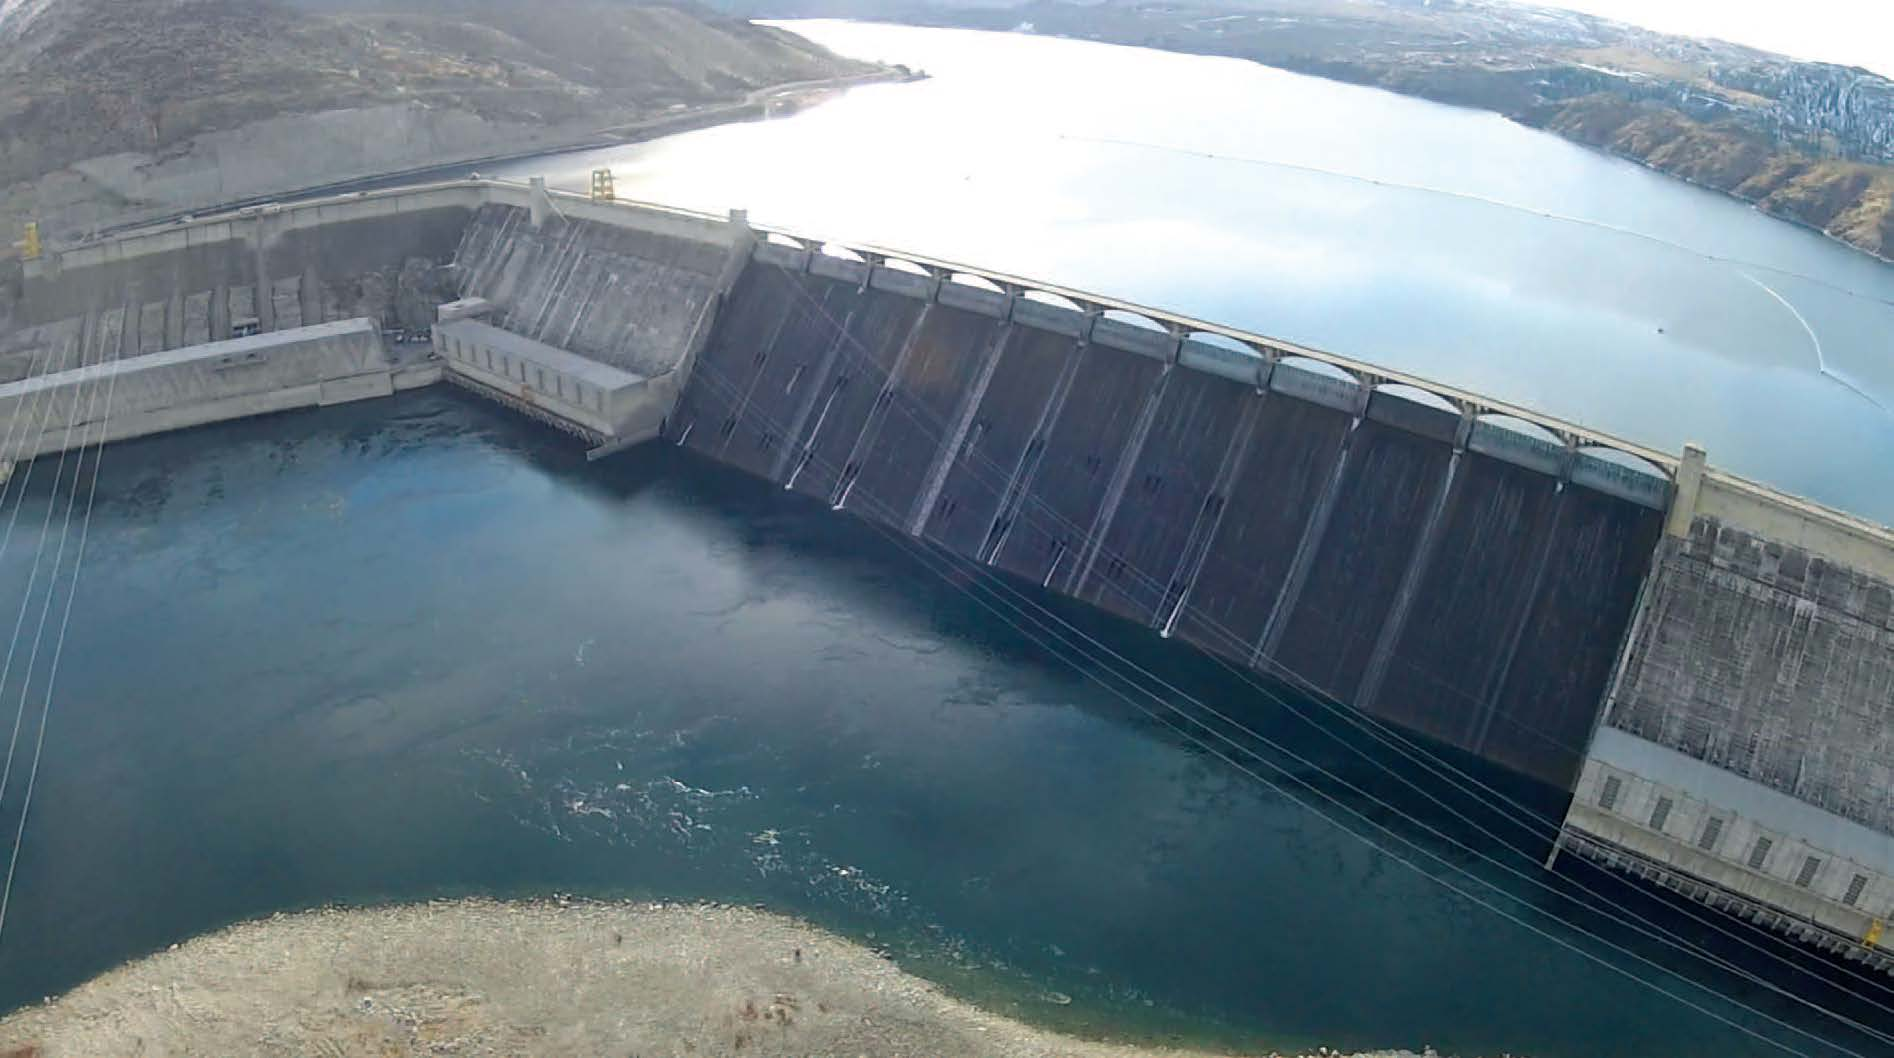 Grand coulee dam fallout fanon wiki fandom powered by wikia grand coulee dam publicscrutiny Gallery